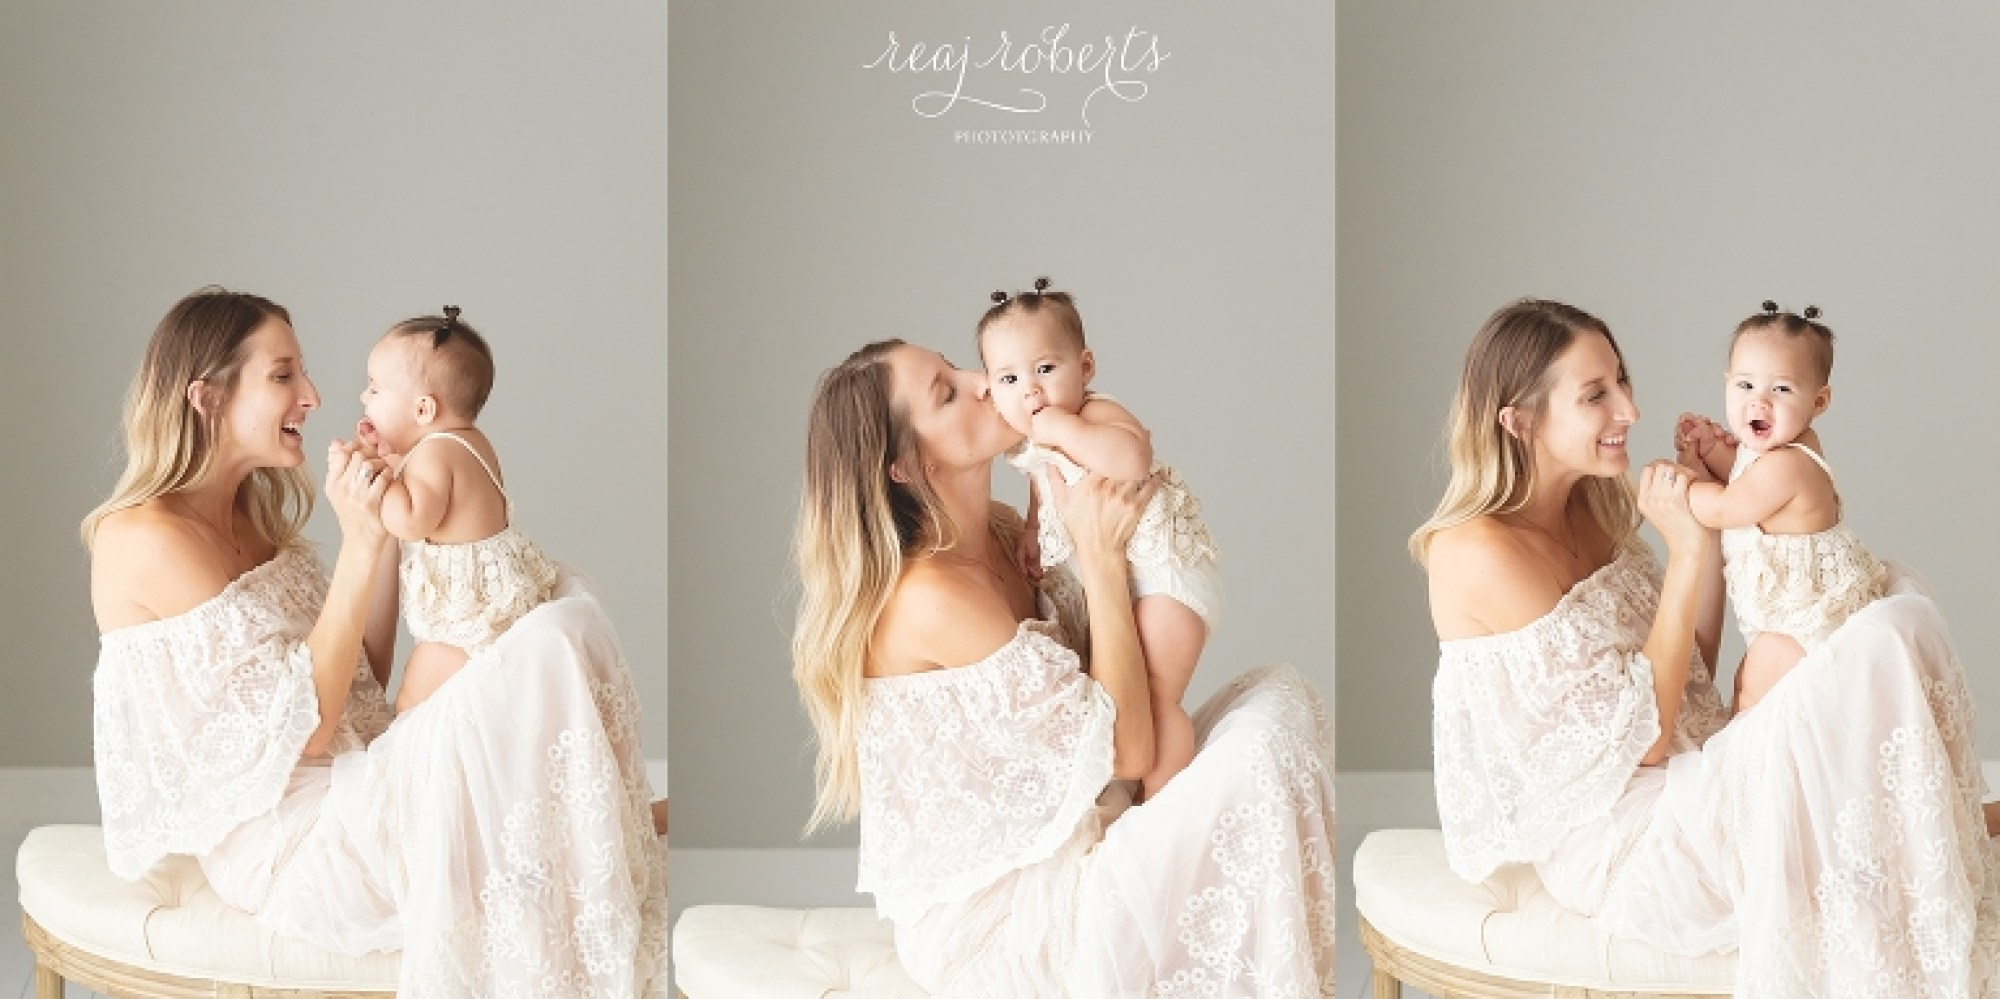 Phoenix Family Photographer | Motherhood photos with baby | Reaj Roberts Photography